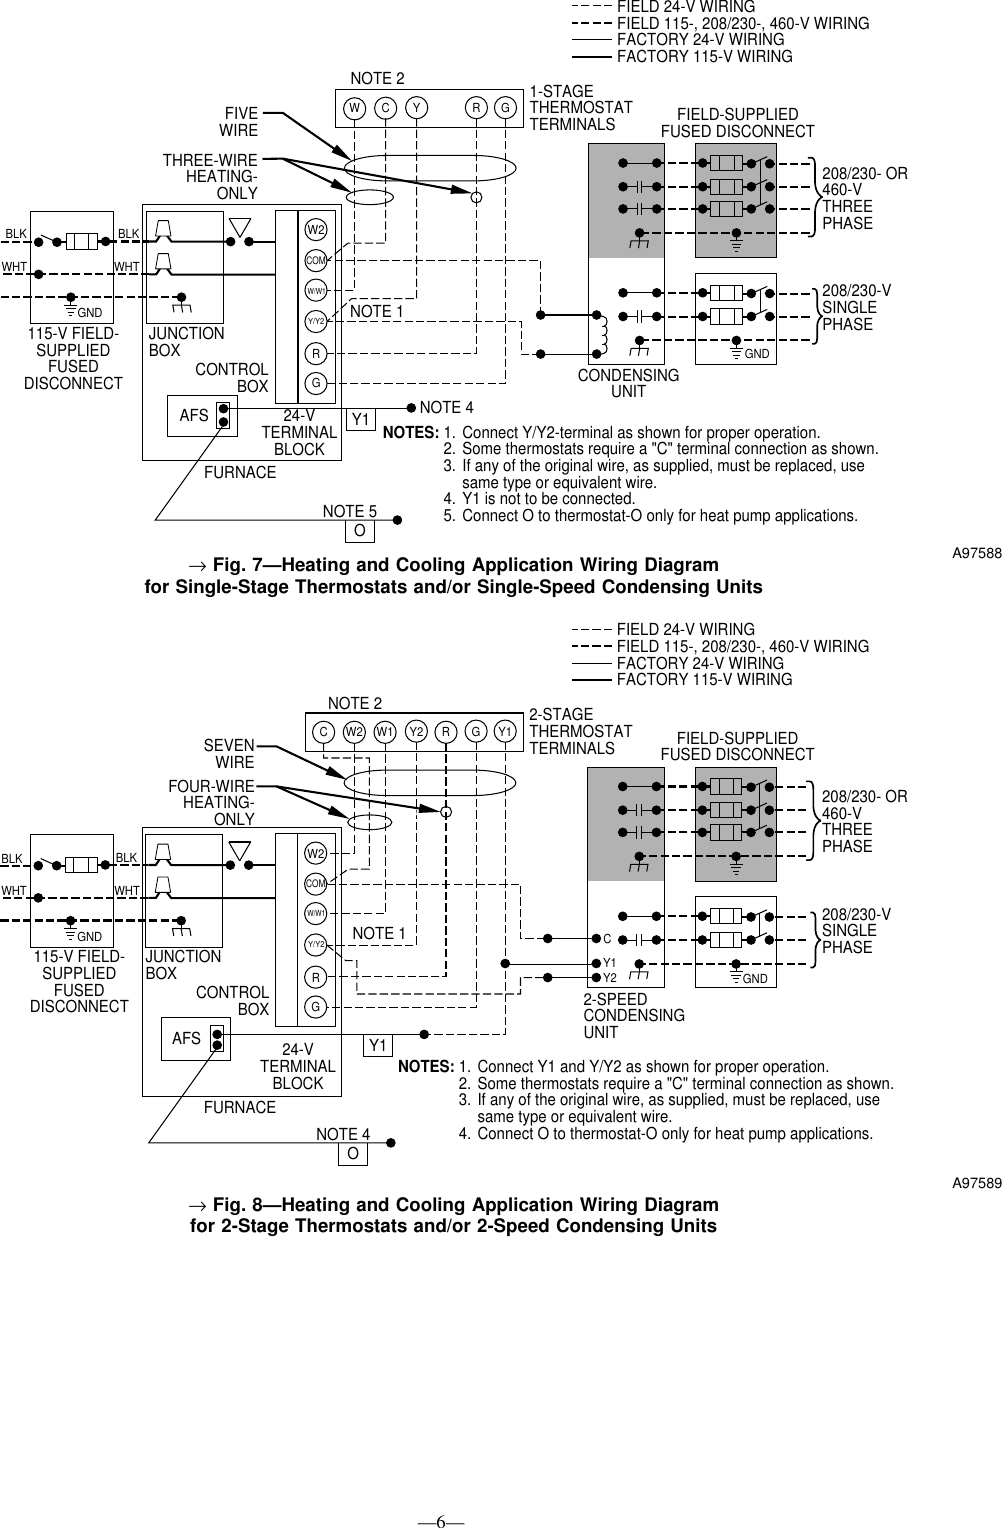 Bryant Induced Combustion 333bav Users Manual Humidifier Wiring Diagram Page 6 Of 12